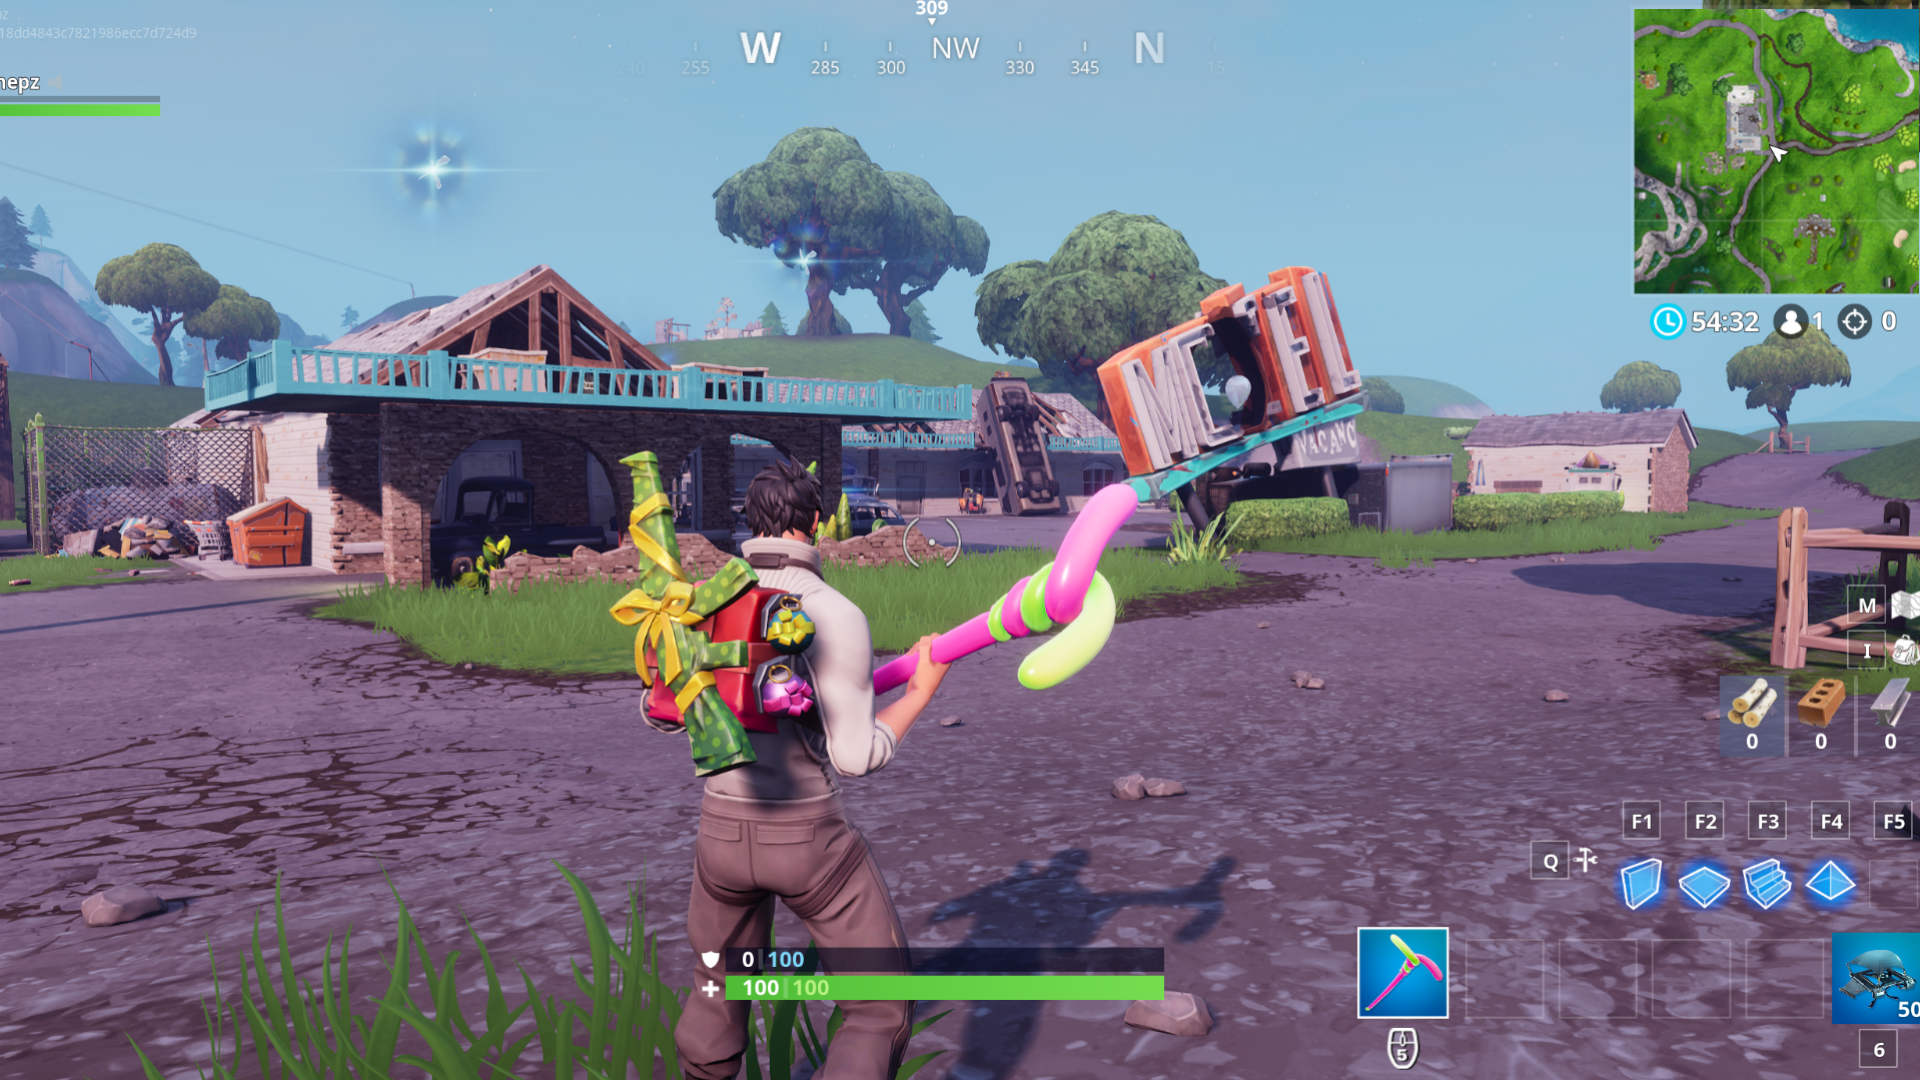 Fortnite Map Of Motel Fortnite Motel And Rv Park Location Where To Search Chests Or Ammo Boxes At A Motel Or Rv Park Overtime Challenges Pcgamesn